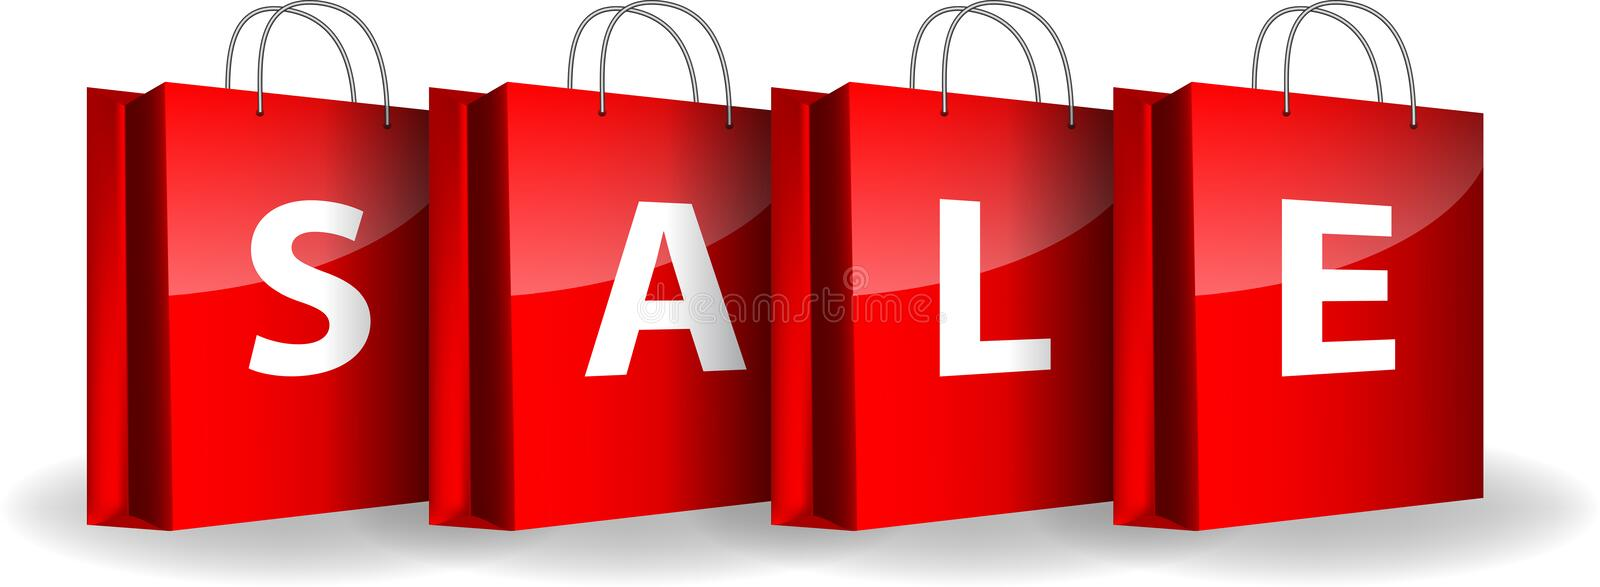 Red shopping bags with the word Sale royalty free illustration